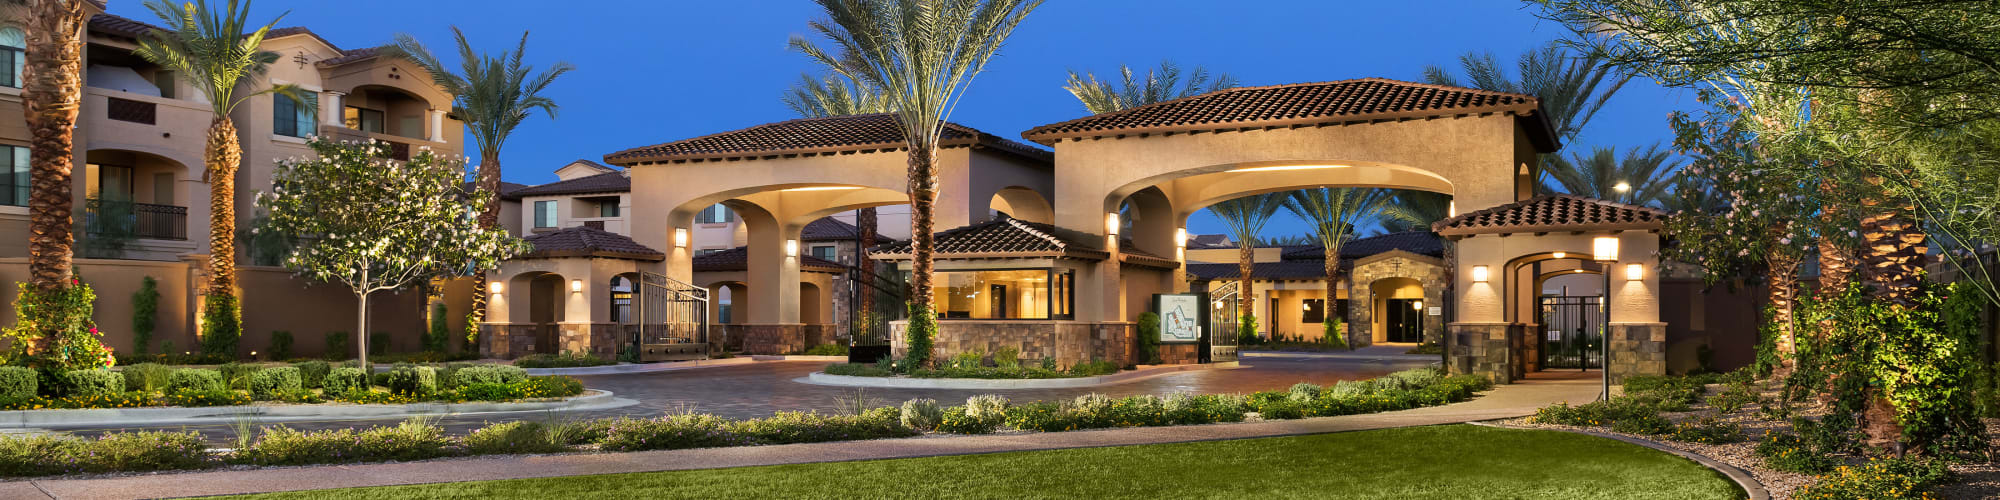 Apply to live at San Portales in Scottsdale, Arizona